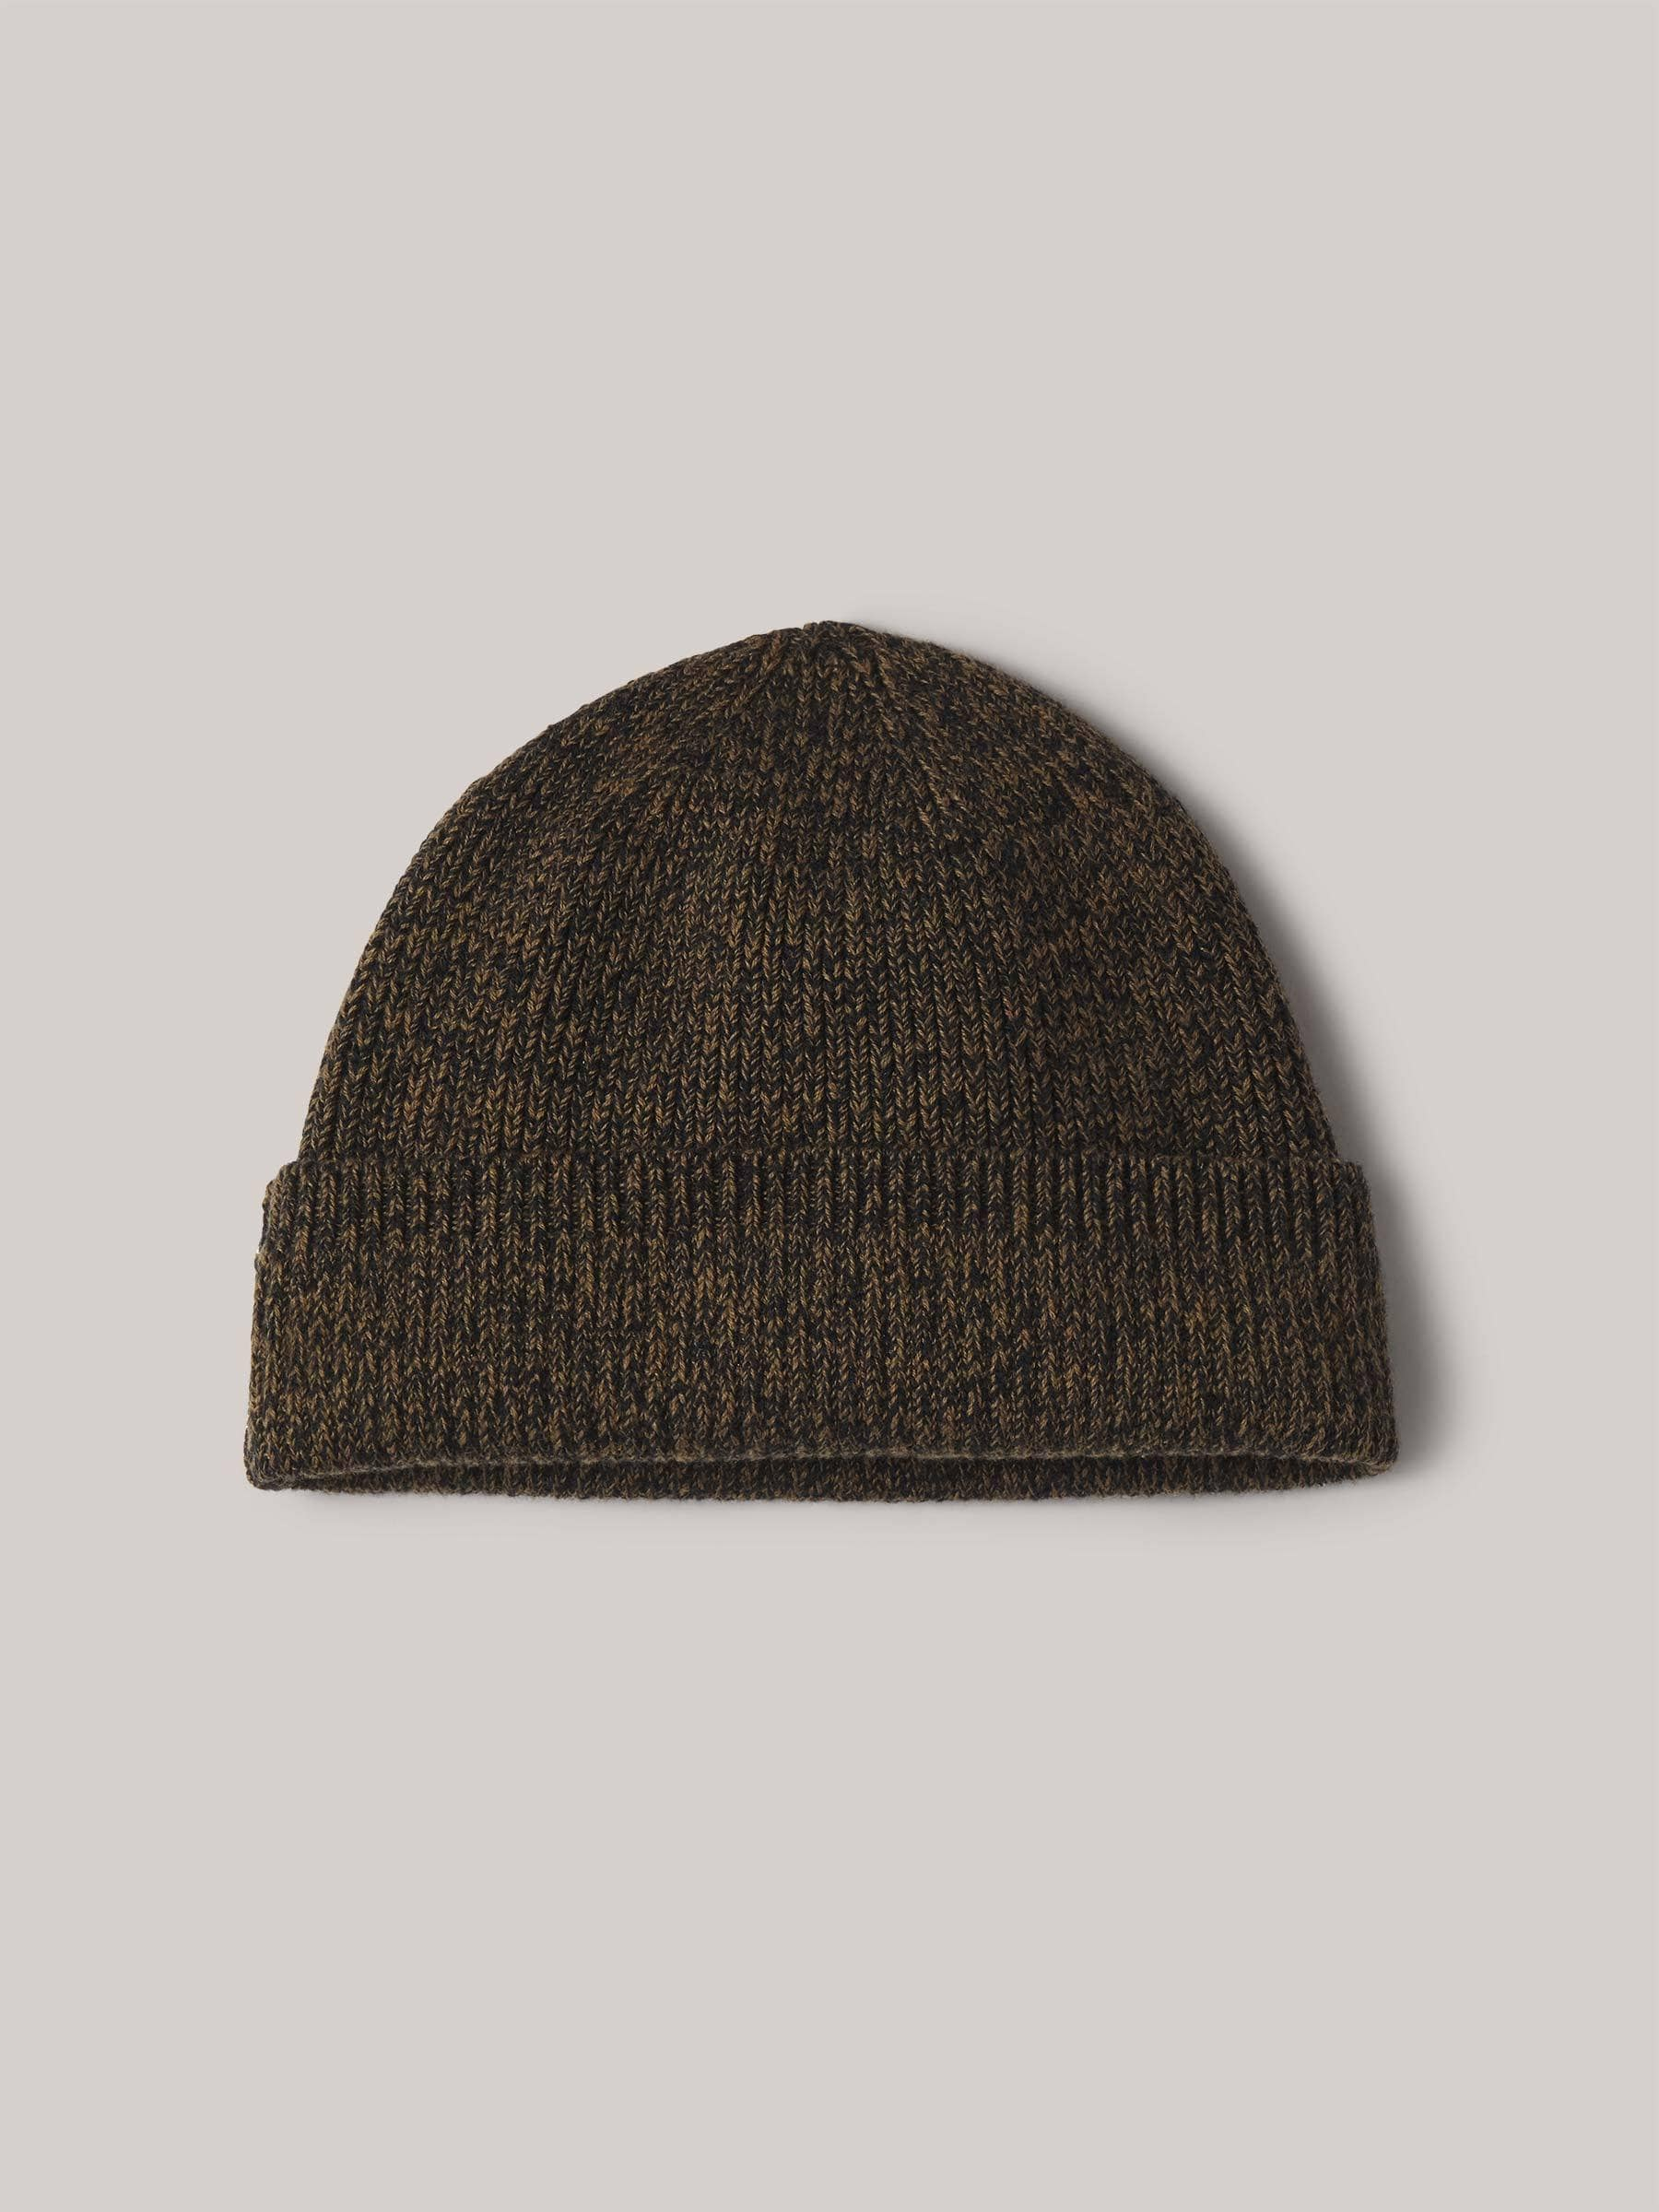 Buck Mason - Antique/Black Marl Cotton Rib-Knit Watch Cap